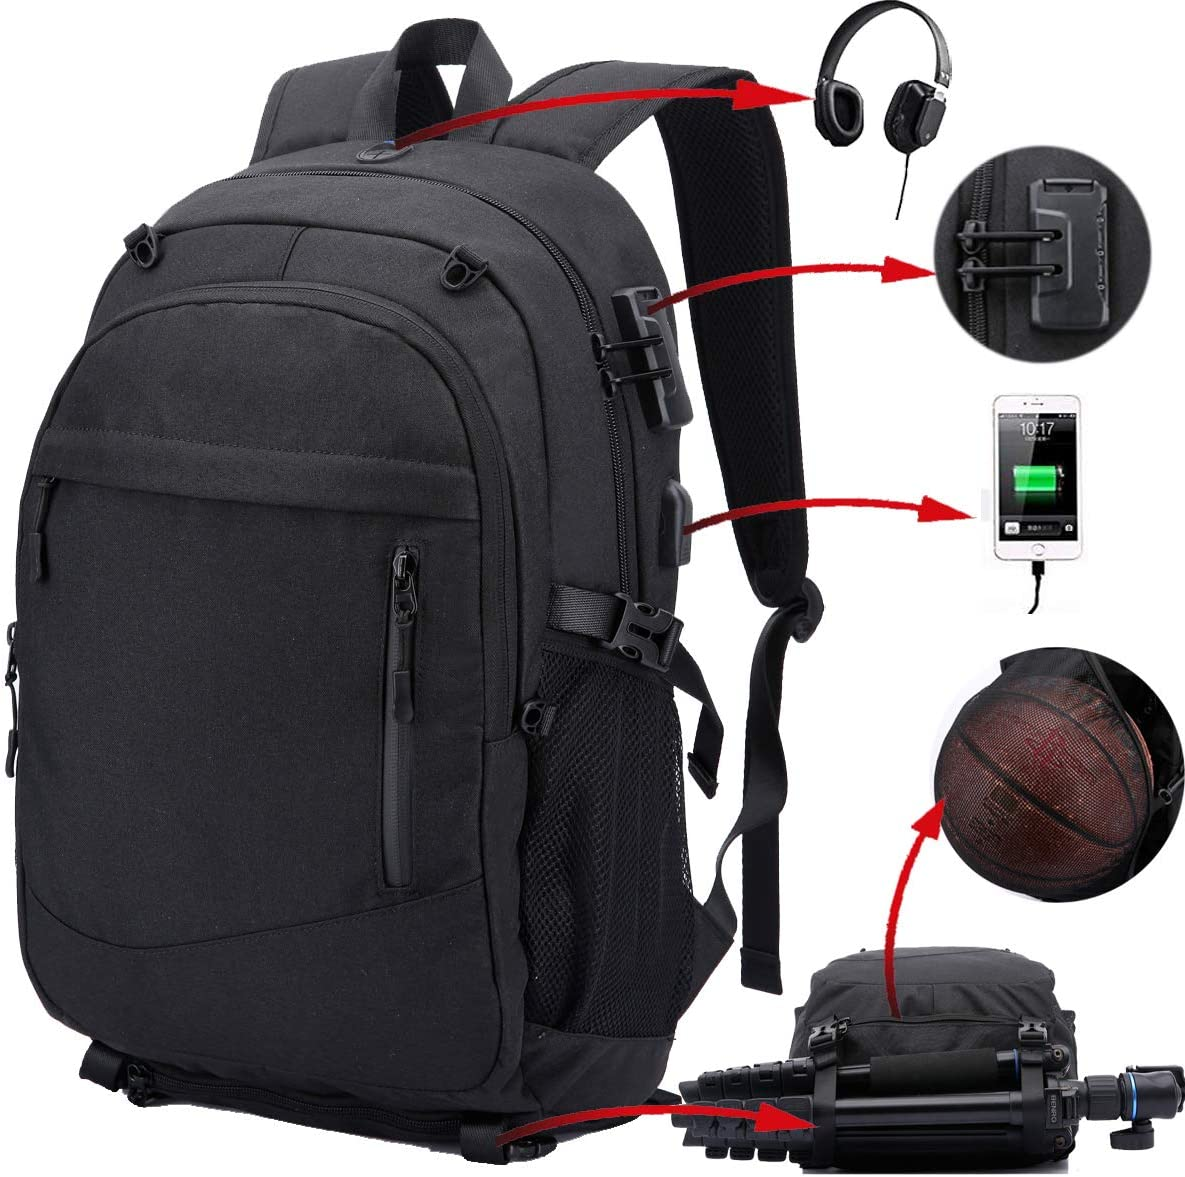 Travel Laptop Backpack for Men, Water Resistant Large School Backpack with Anti-Theft Lock, College Basketball Bag USB Charging Port Soccer Sports Backpack Gym with Headphone Jack